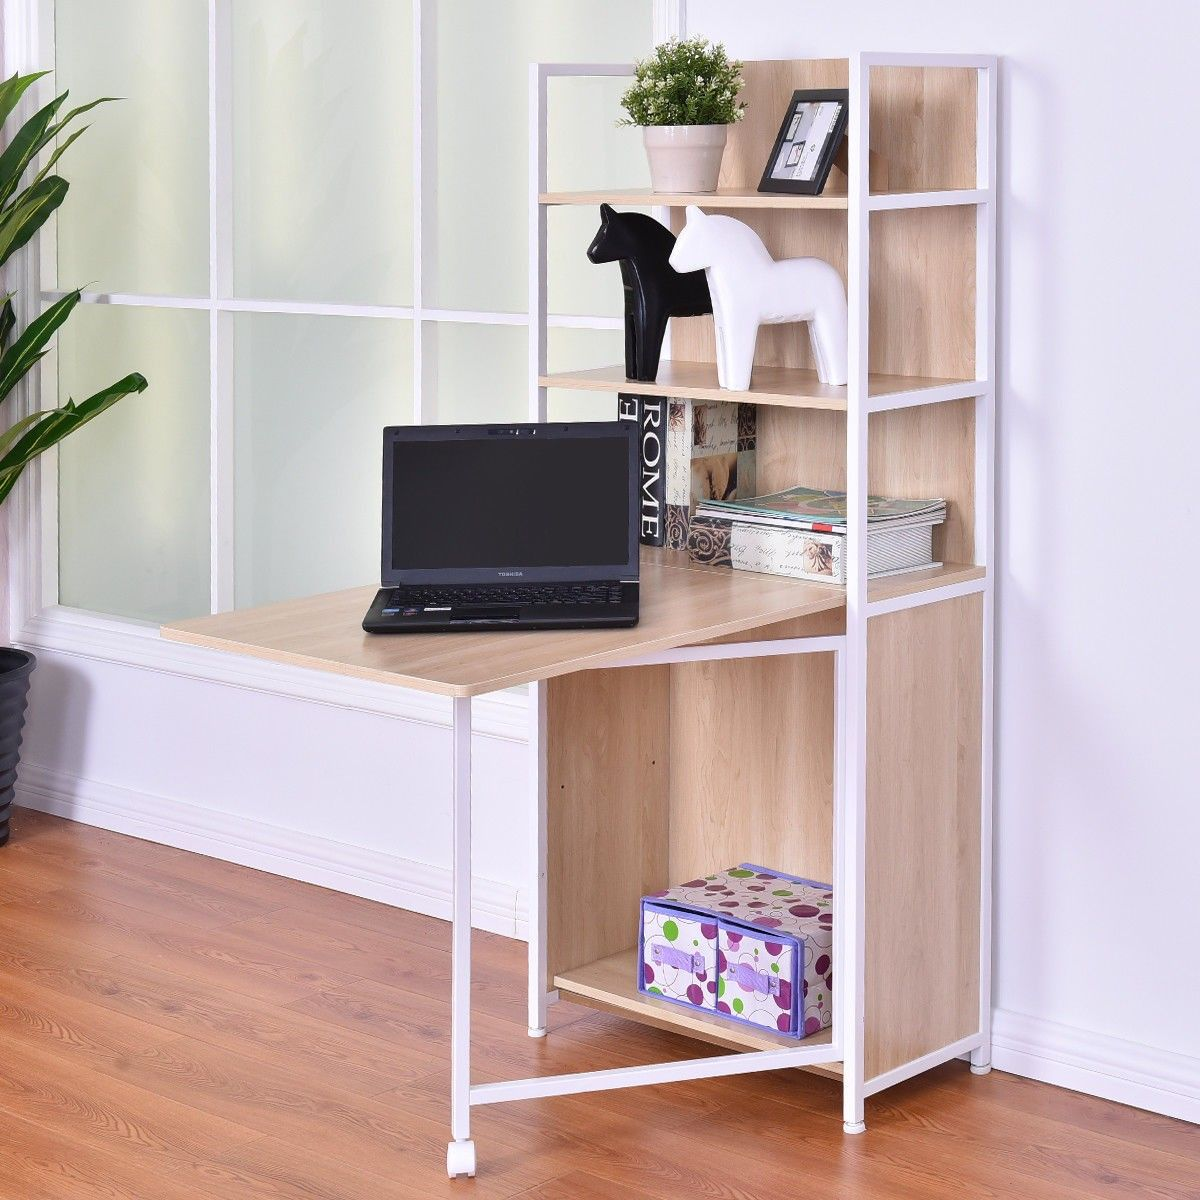 2 In 1 Foldable Convertible Desk With Cabinet And Bookshelf